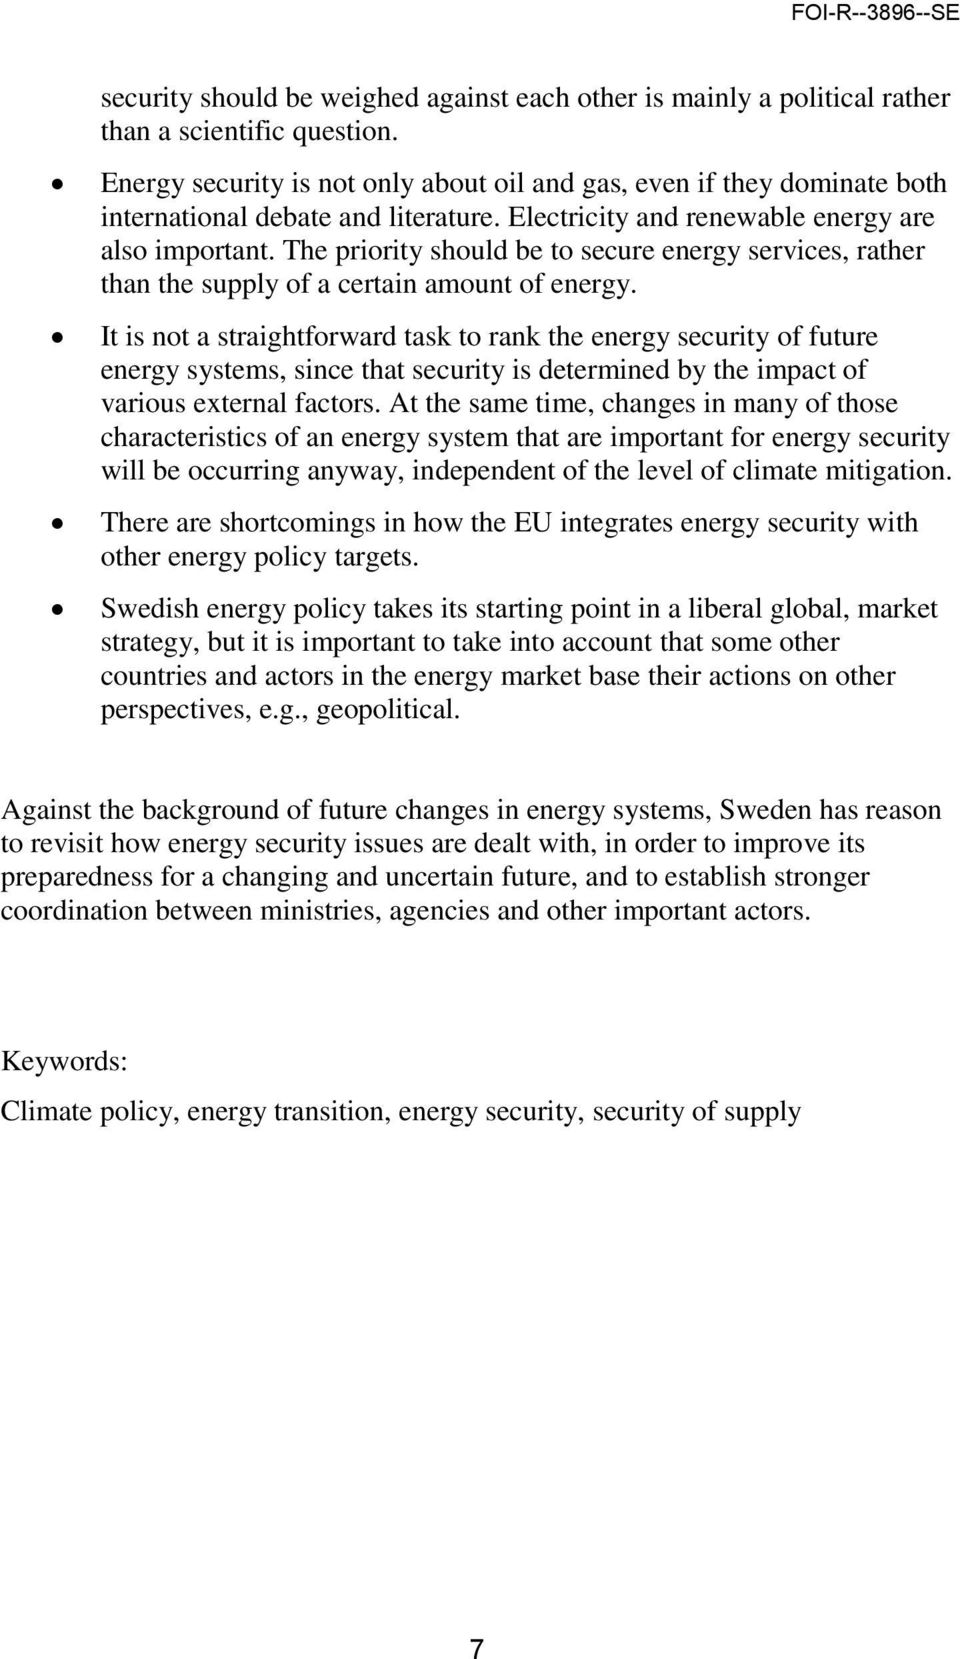 The priority should be to secure energy services, rather than the supply of a certain amount of energy.